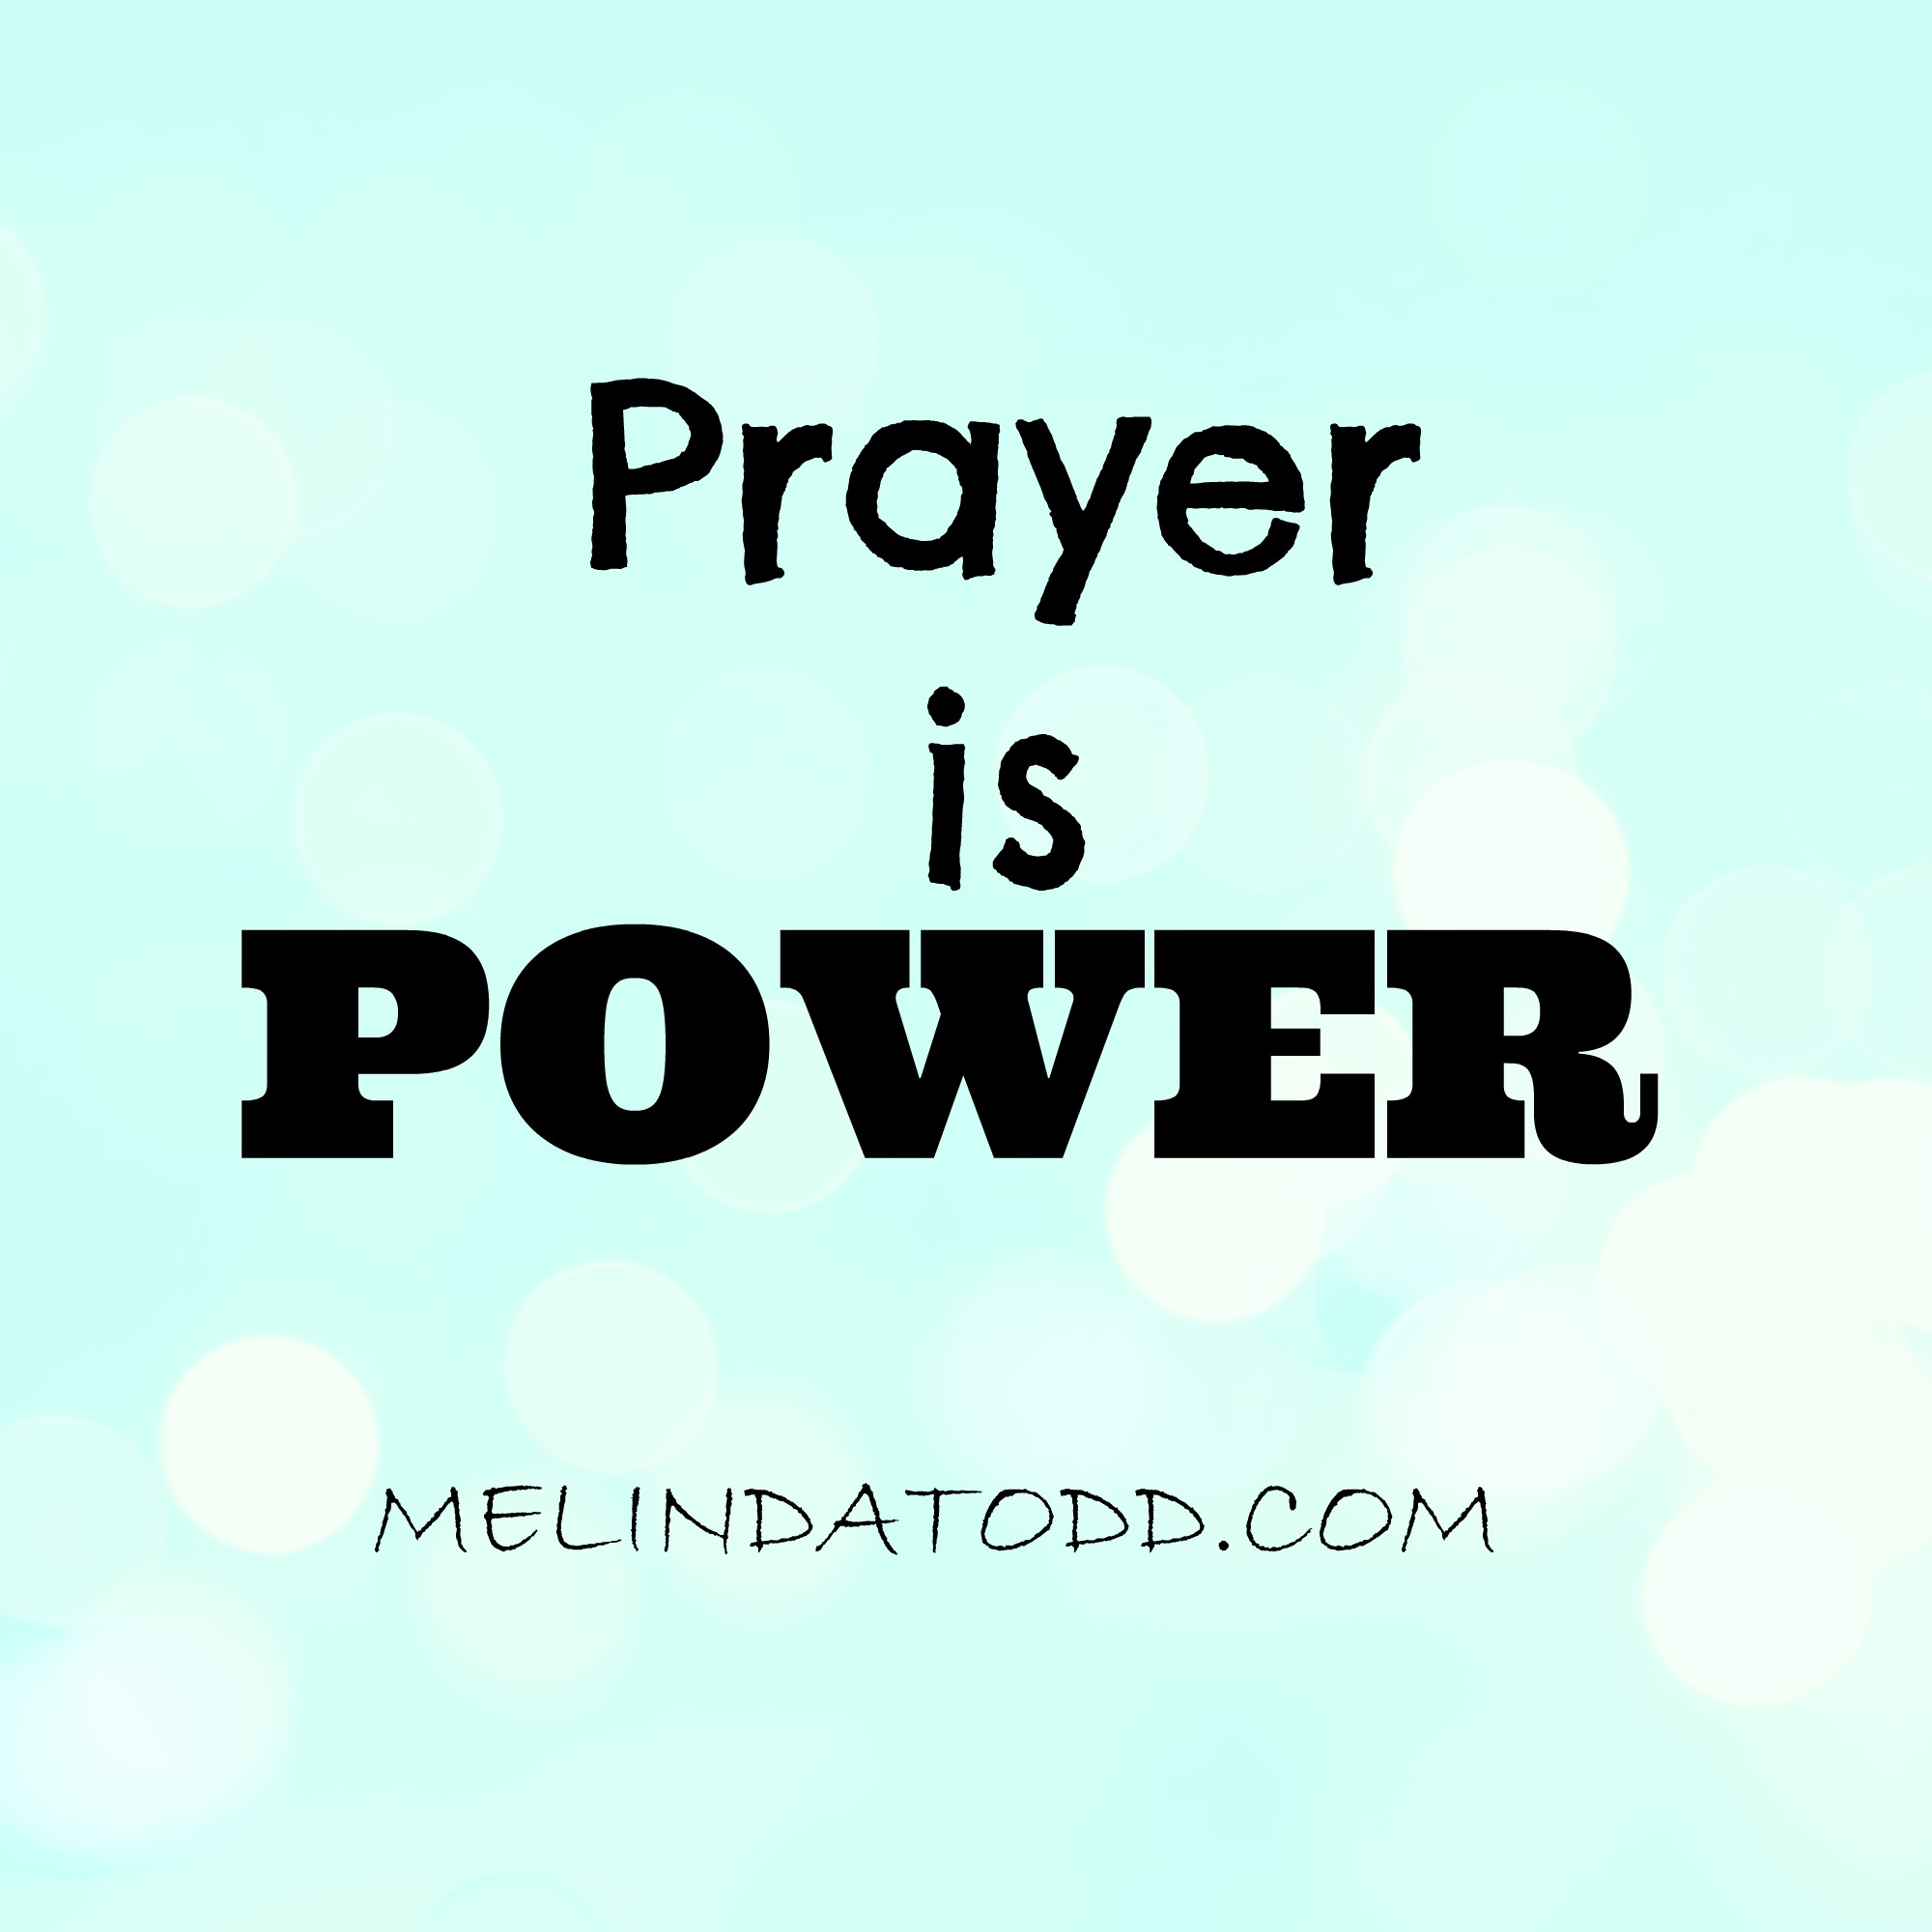 prayer is power melindatodd